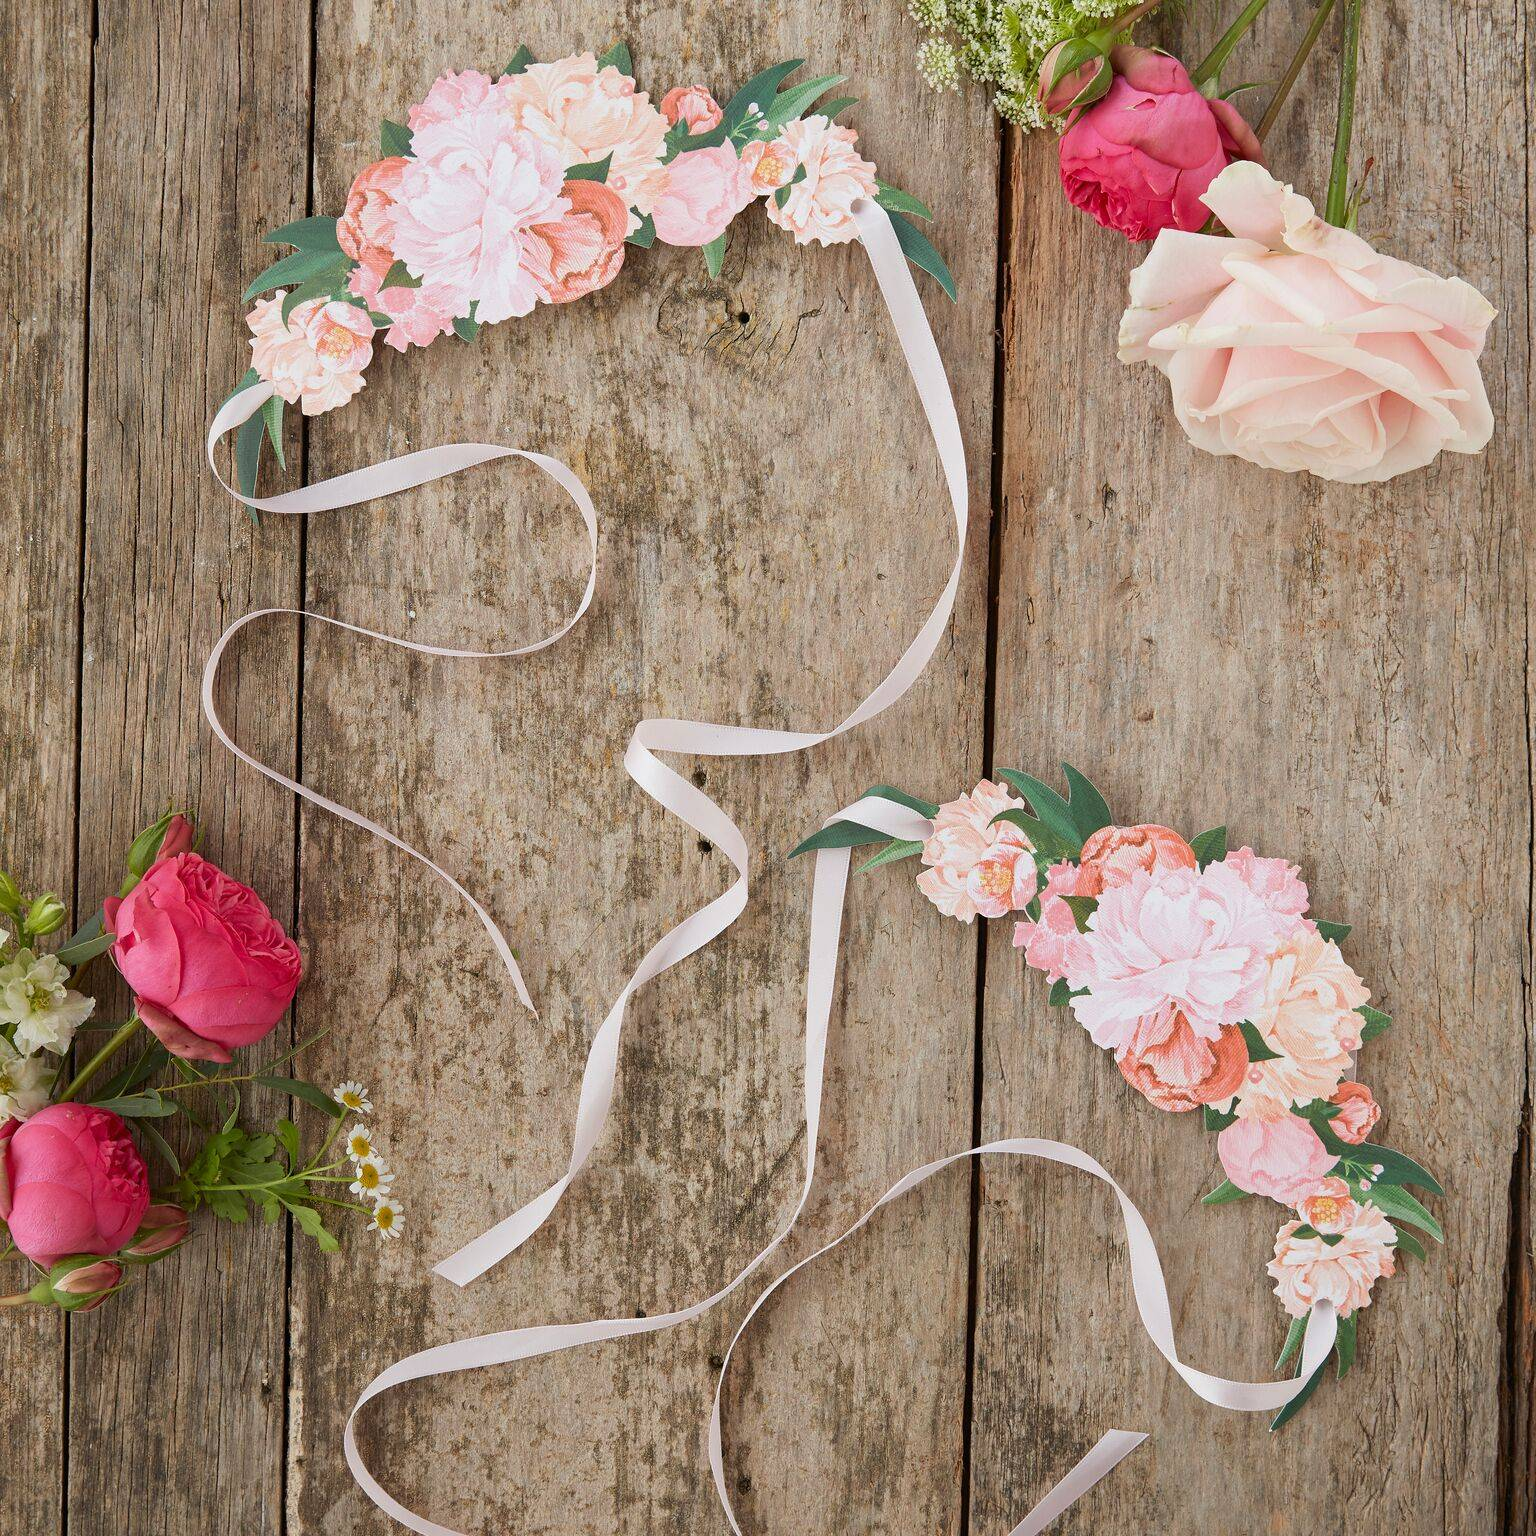 A top-down photo of a rustic wedding table with floral headbands and flowers laid out in pink hues